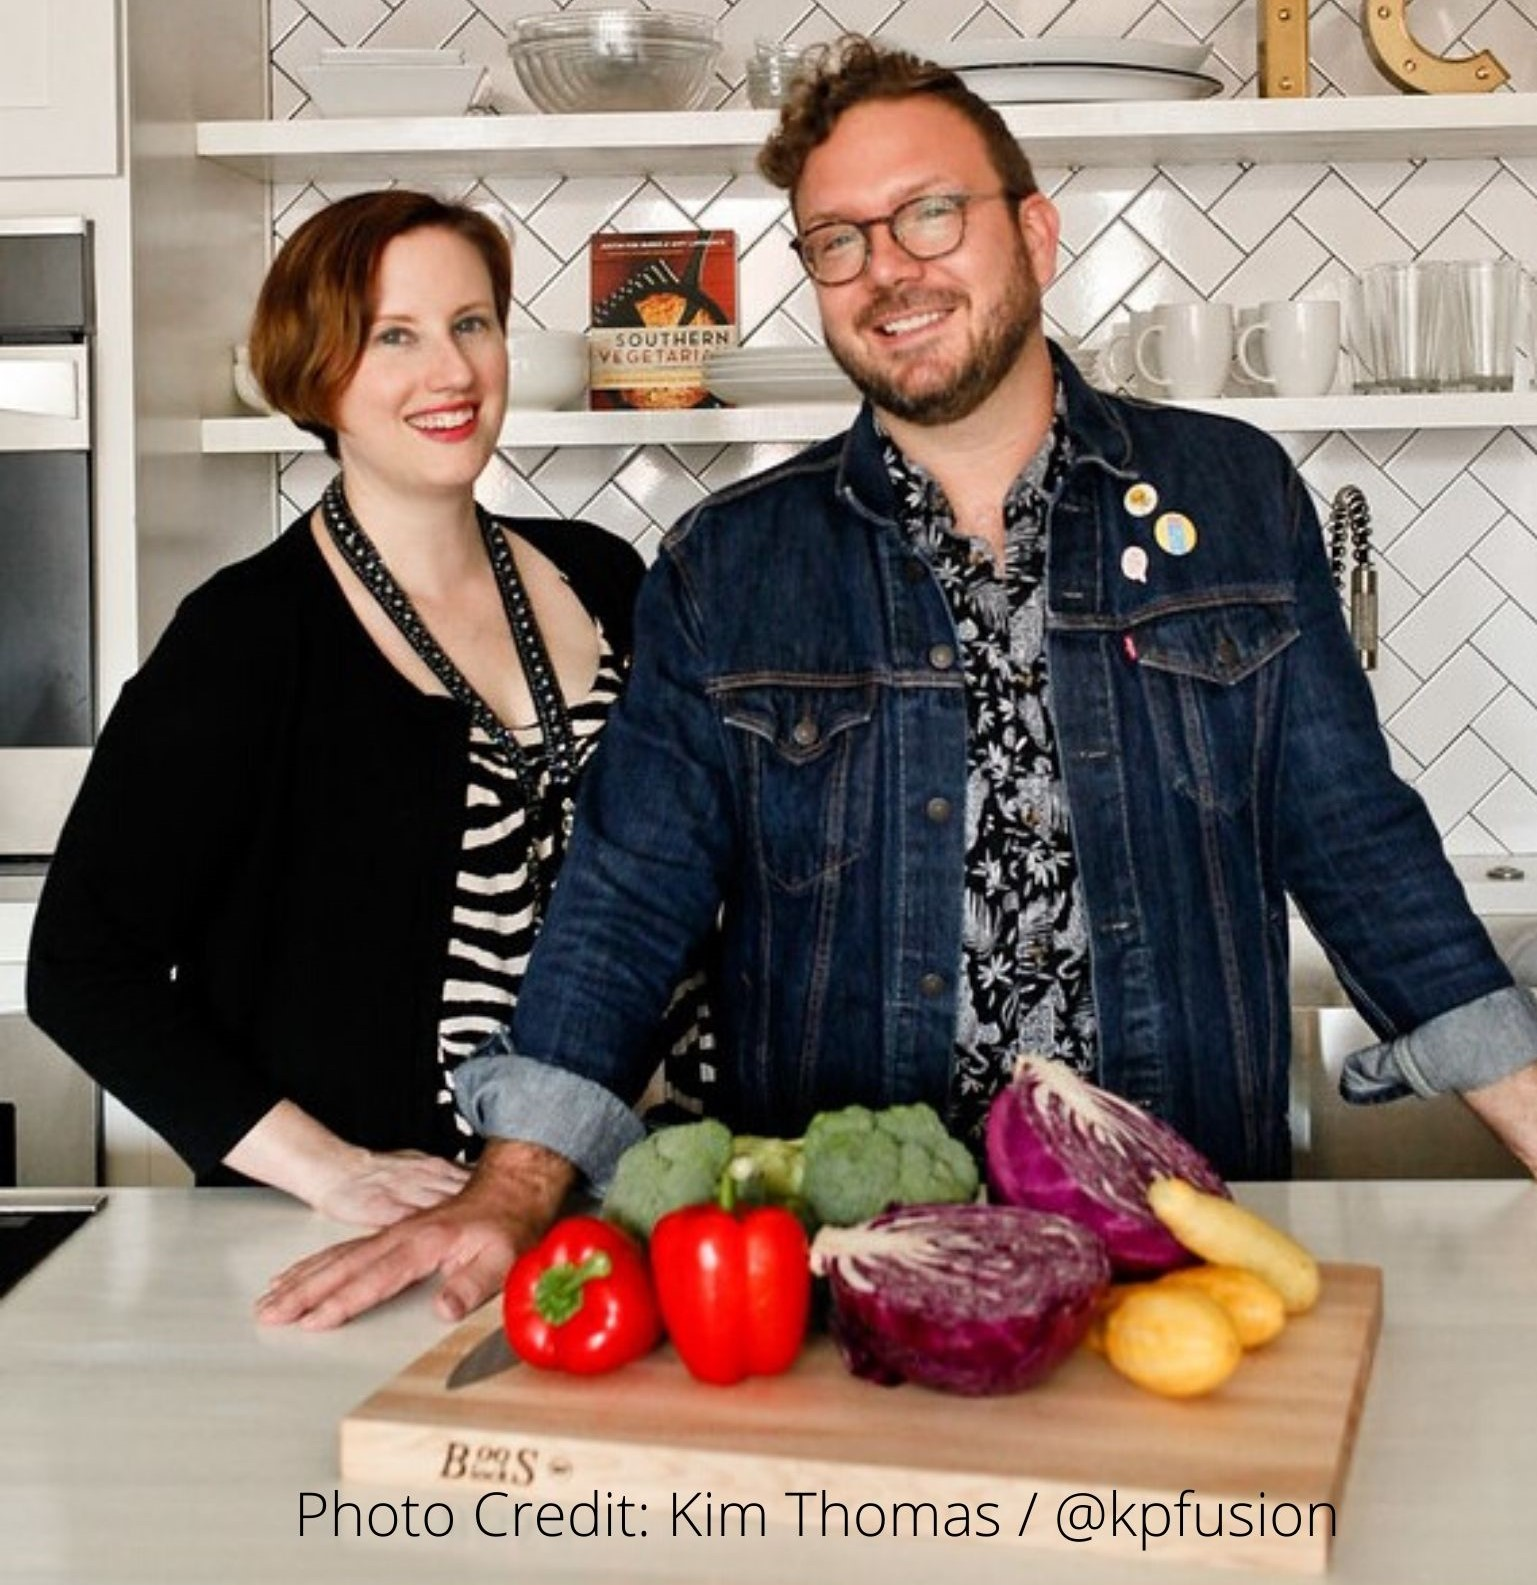 A Cooking Demo with Justin Fox Burks + Amy Lawrence  from their newly published  Low Carb Vegetarian Cookbook